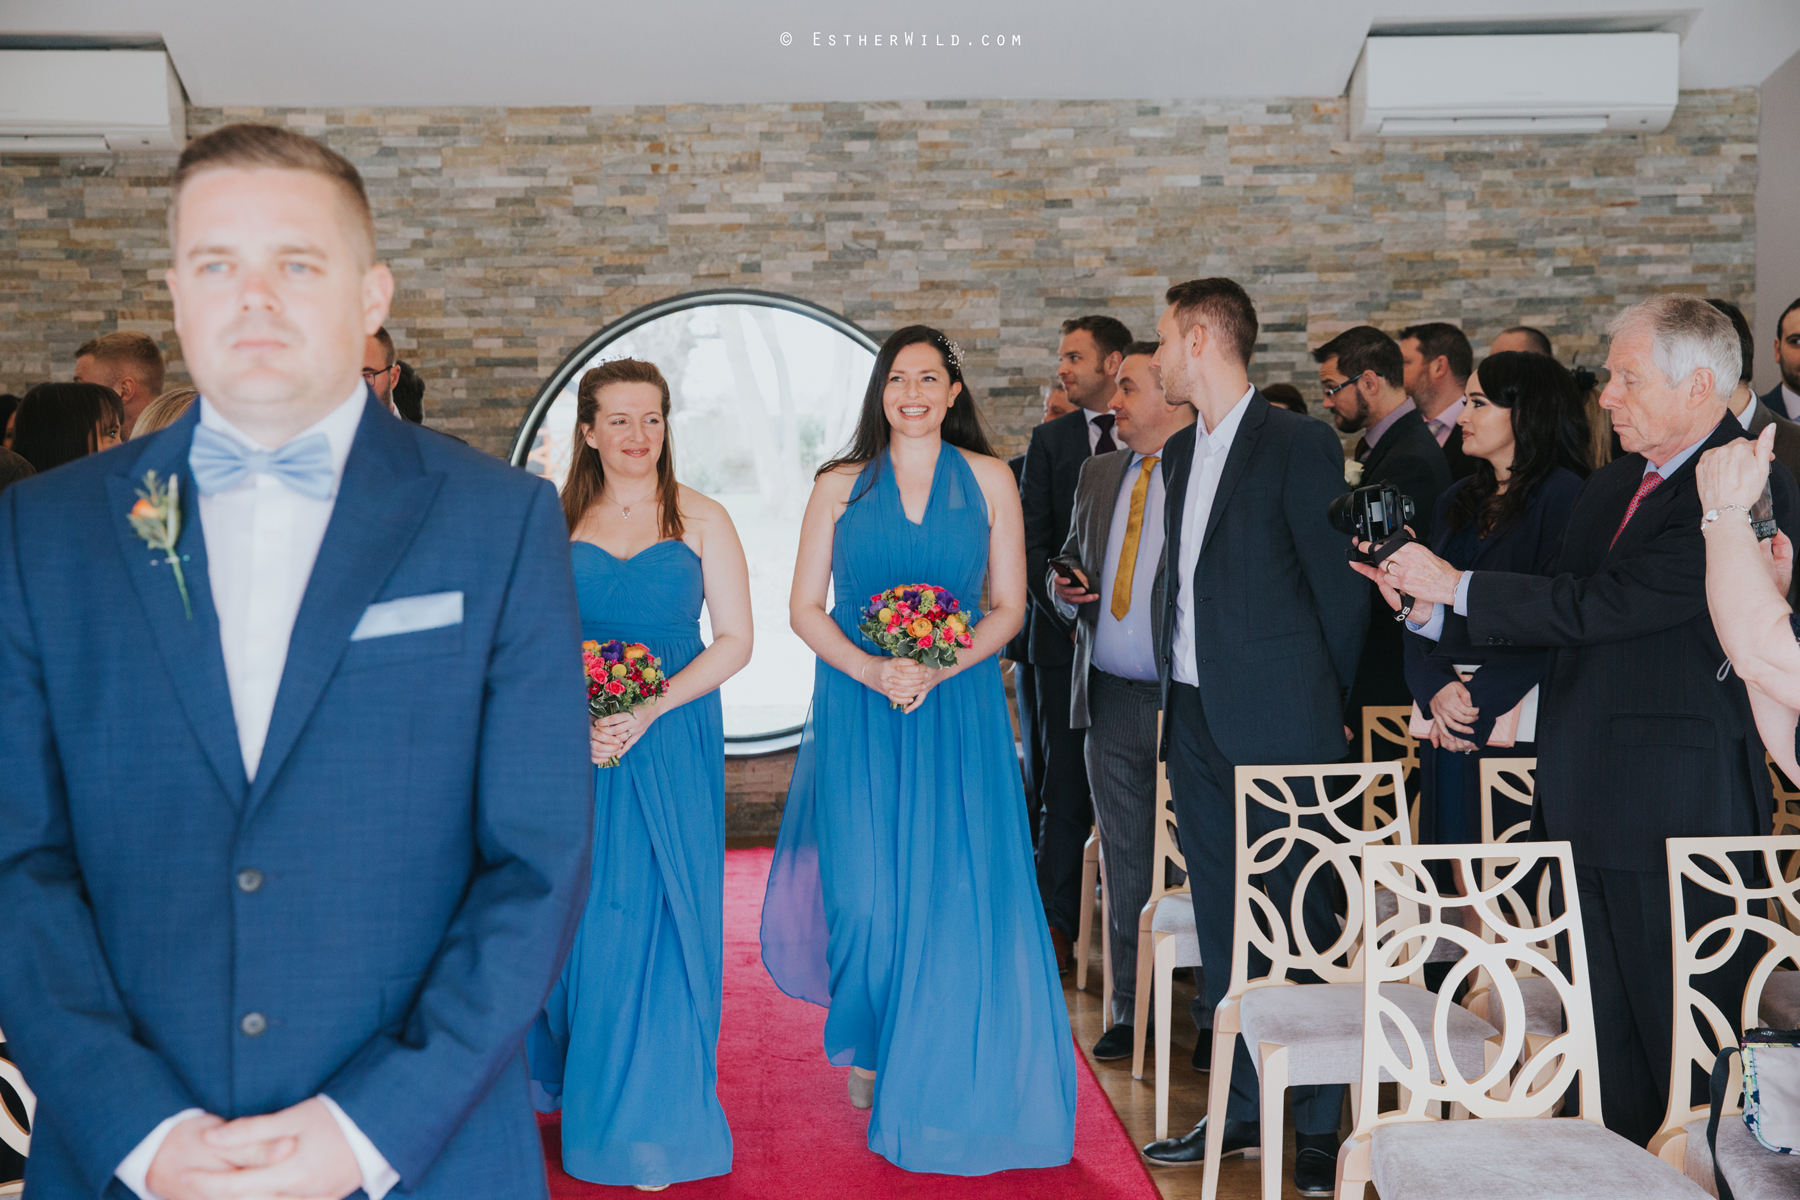 The_BoatHouse_Wedding_Venue_Ormesby_Norfolk_Broads_Boat_Wedding_Photography_Esther_Wild_Photographer_IMG_1008.jpg